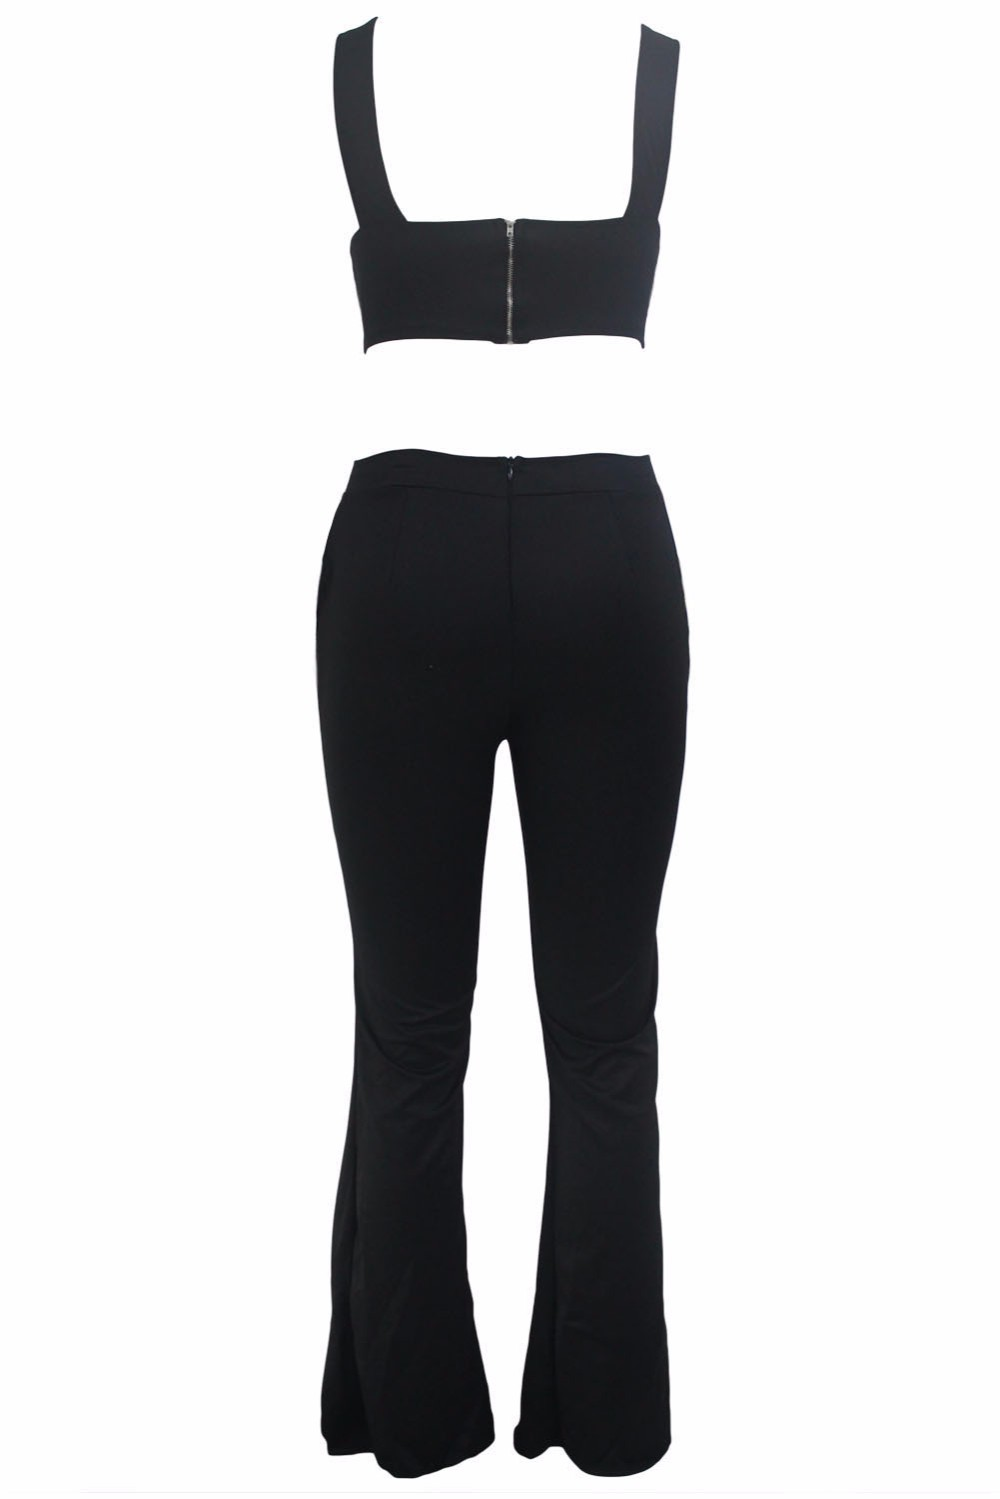 Black-Cross-Front-Crop-Top-and-Pocket-Pant-Set-LC62005-2-42962